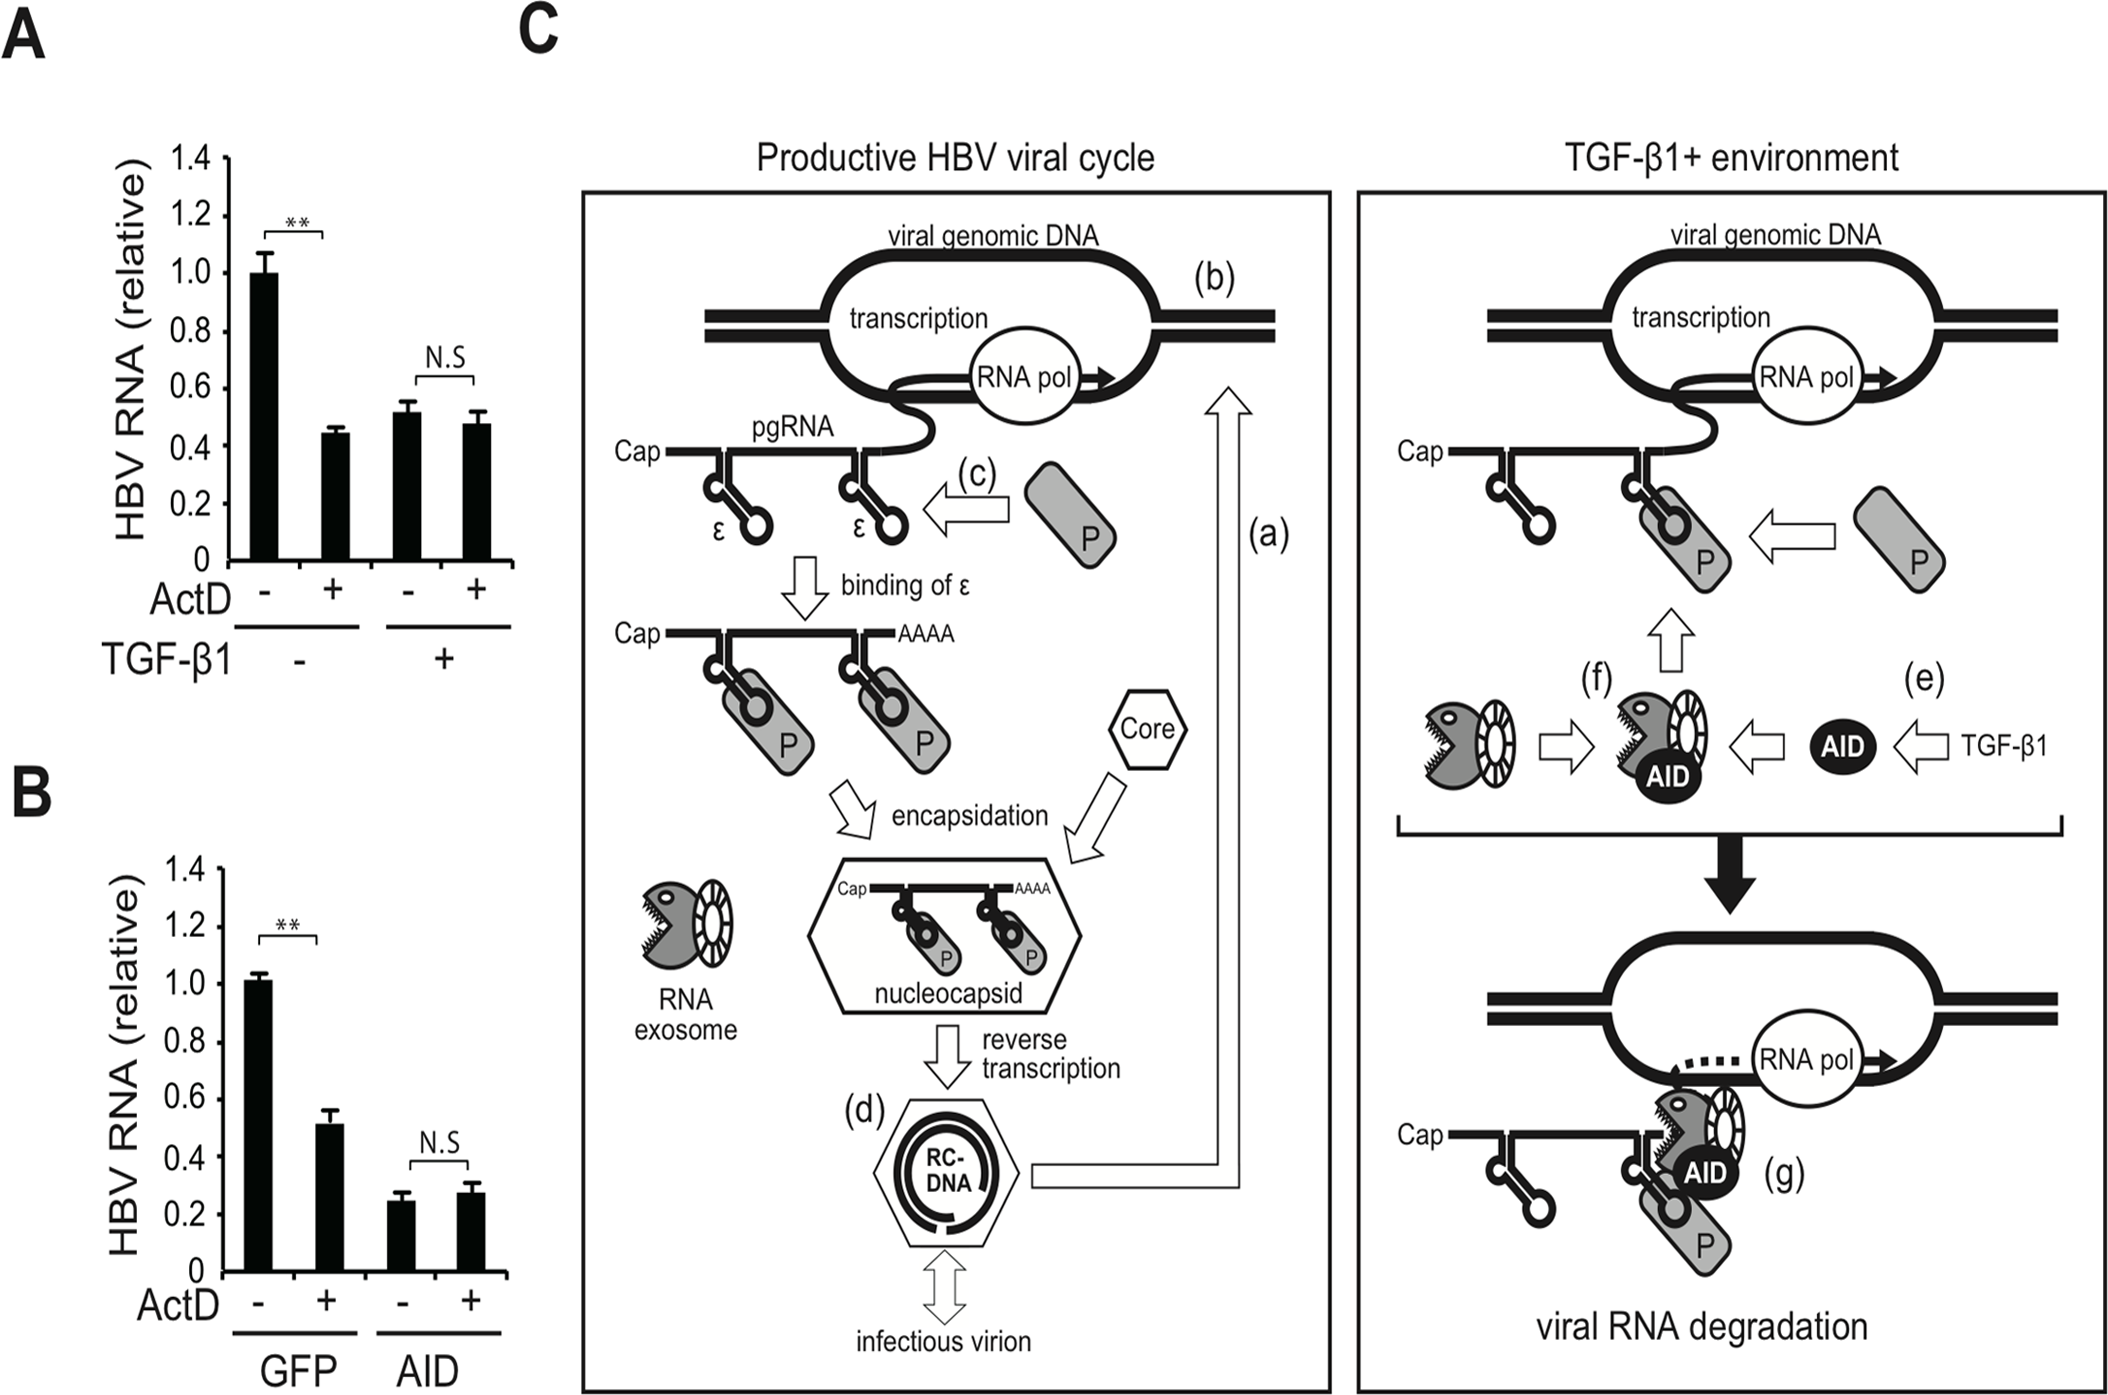 Transcription dependency for TGF-β1-mediated reduction of HBV transcripts and a proposed model.